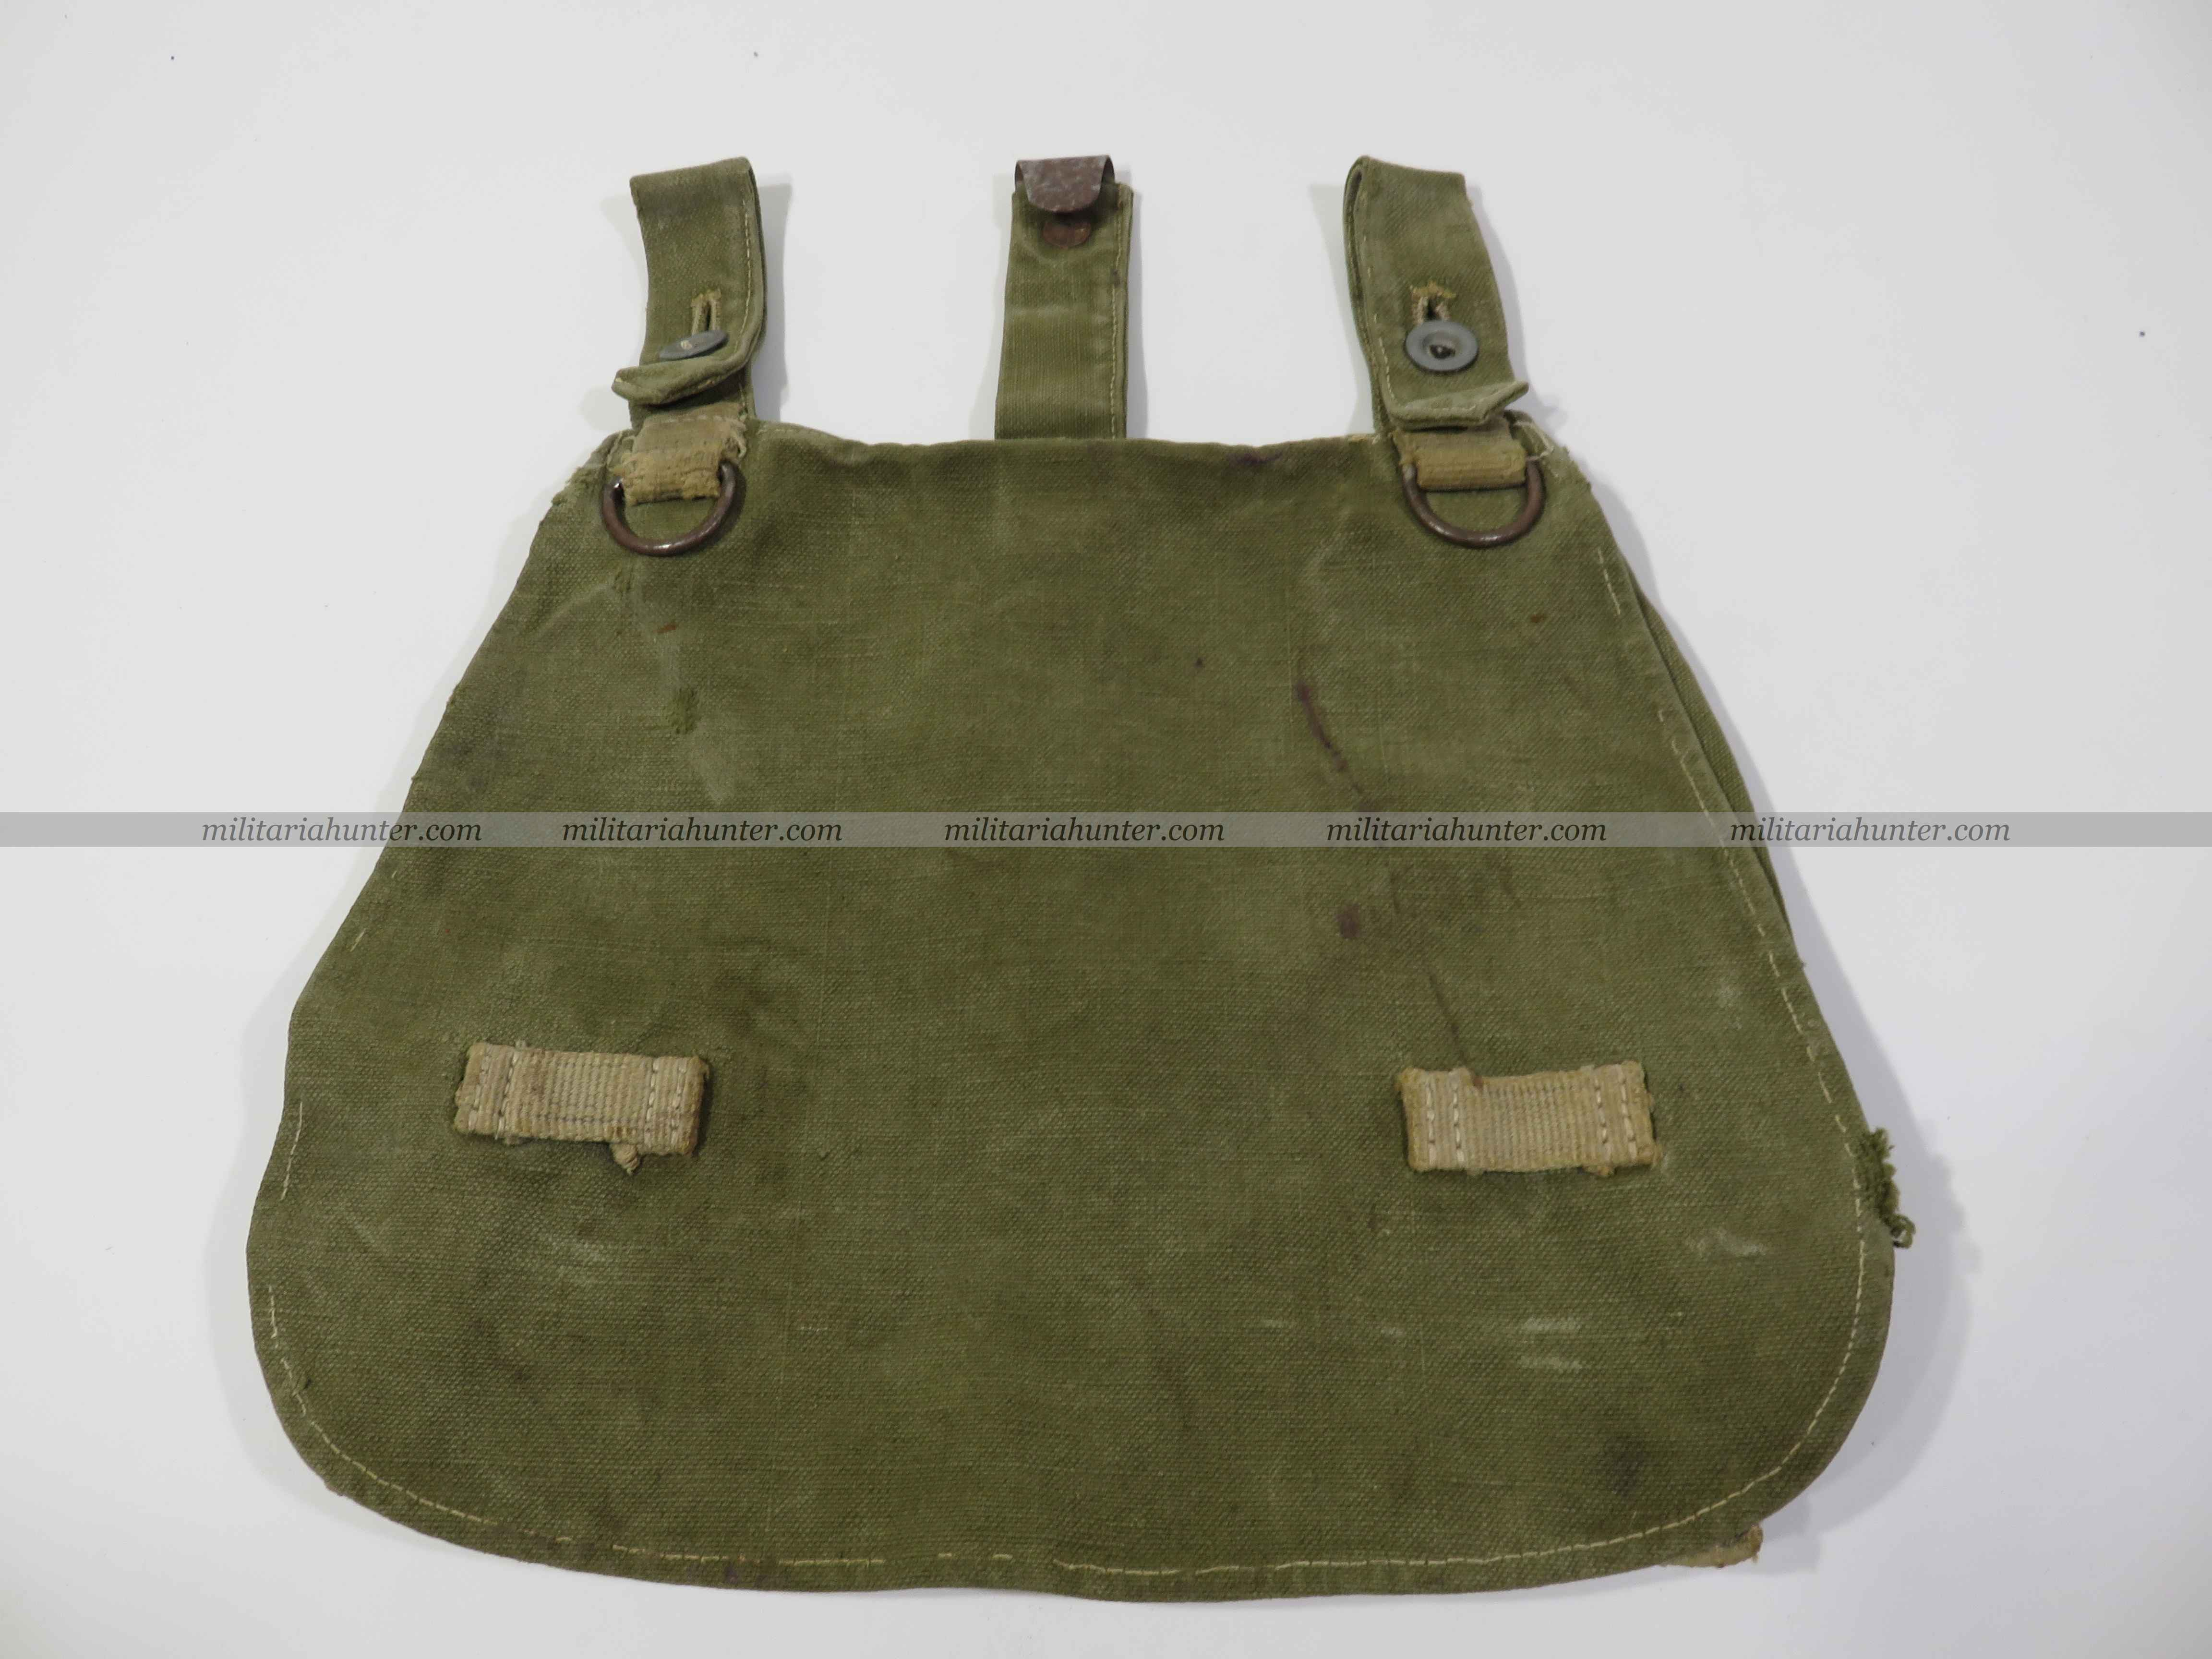 militaria : ww2 tropical / late war breadbag - Sac à pain tropical / fin de guerre - Brotbeu